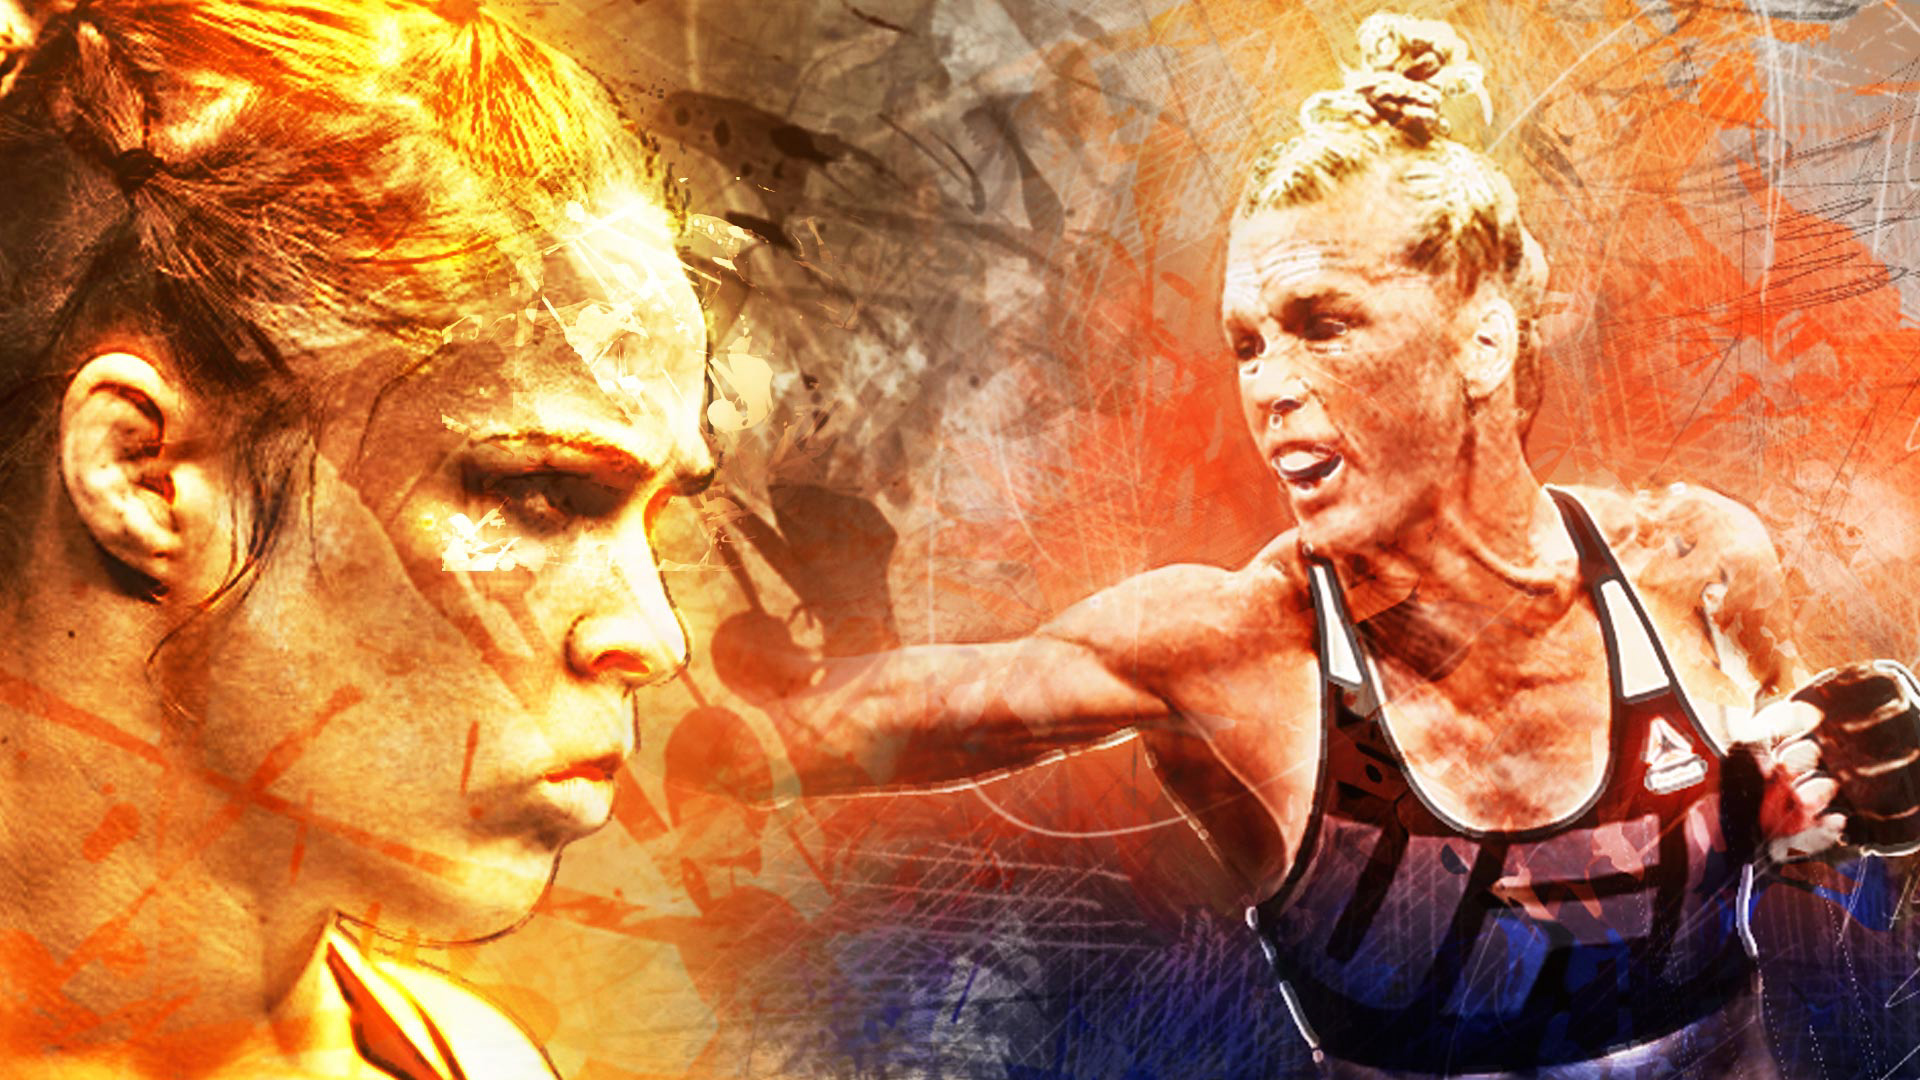 ILLO-UFC-193-Rousey-Holm-111115-GETTY-FTR.jpg